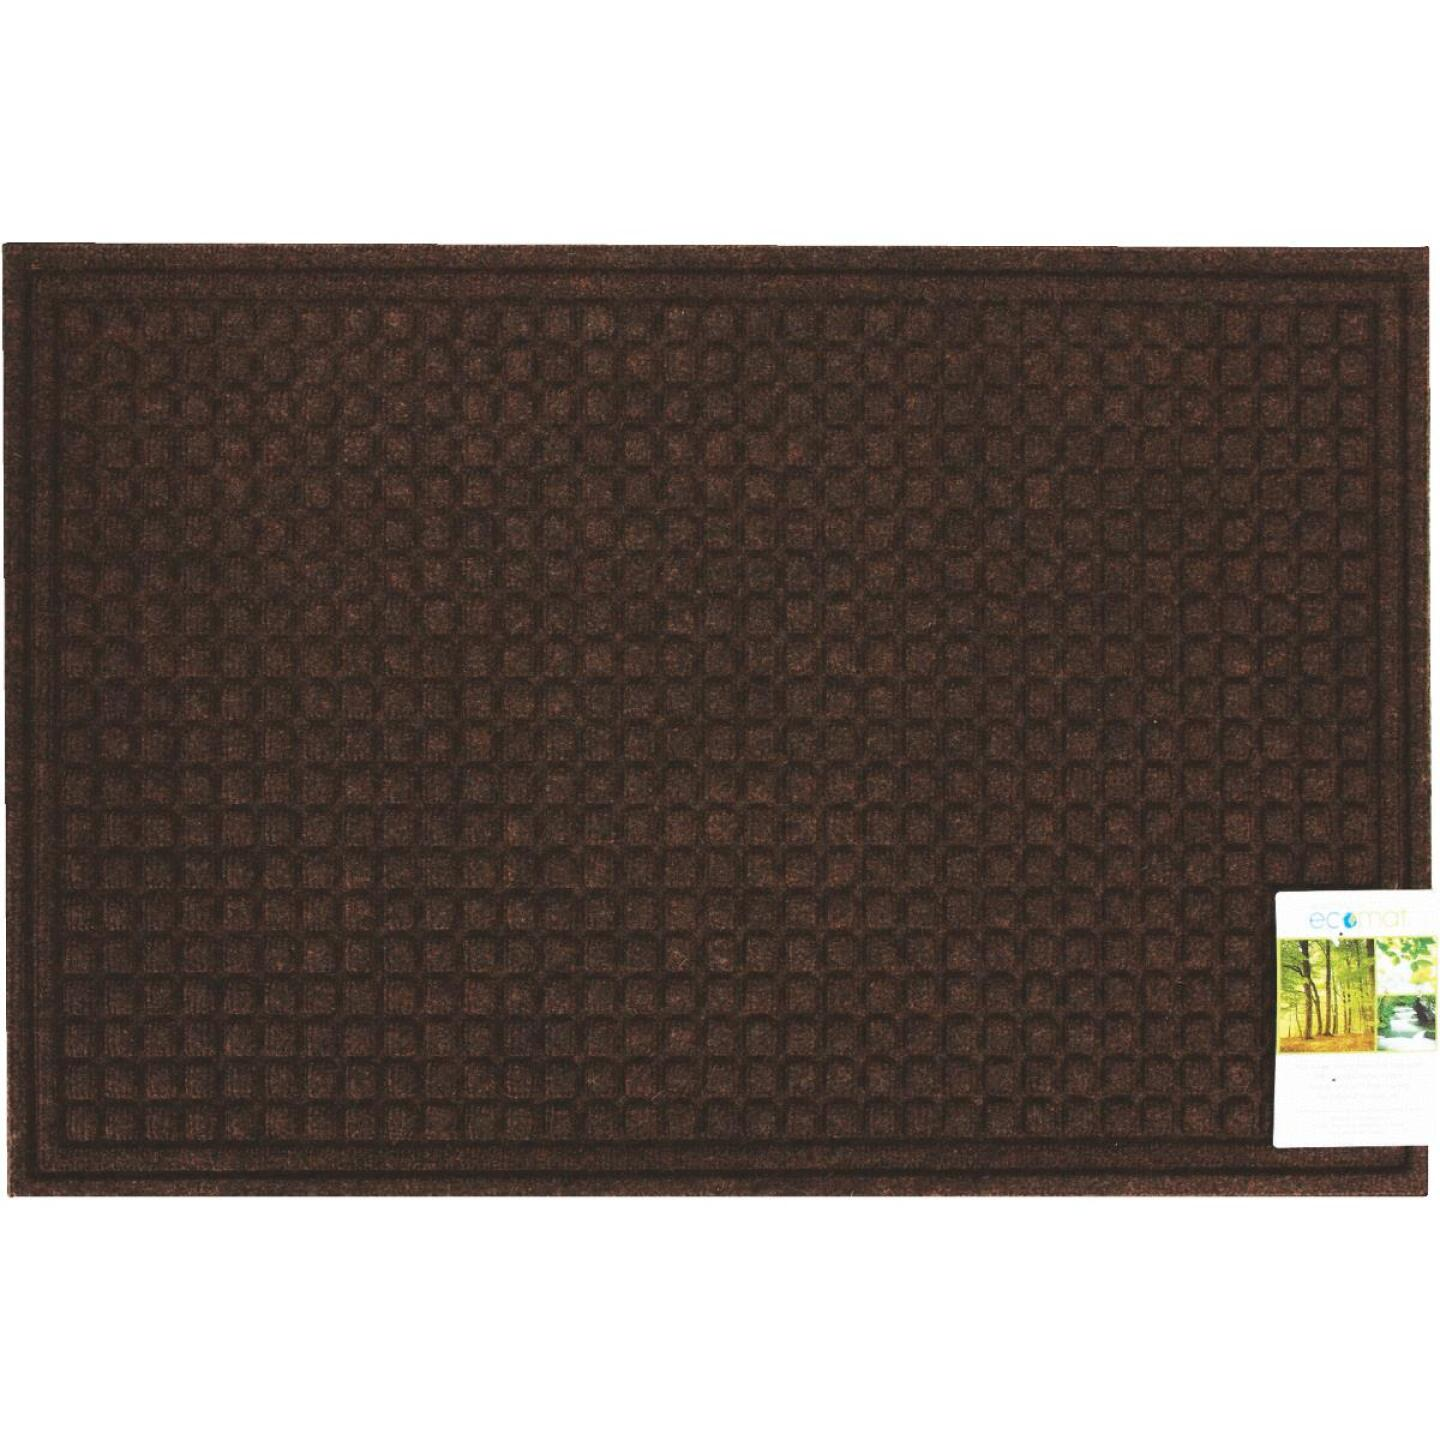 Apache Textures Walnut 24 In. x 36 In. Carpet/Recycled Rubber Door Mat Image 3